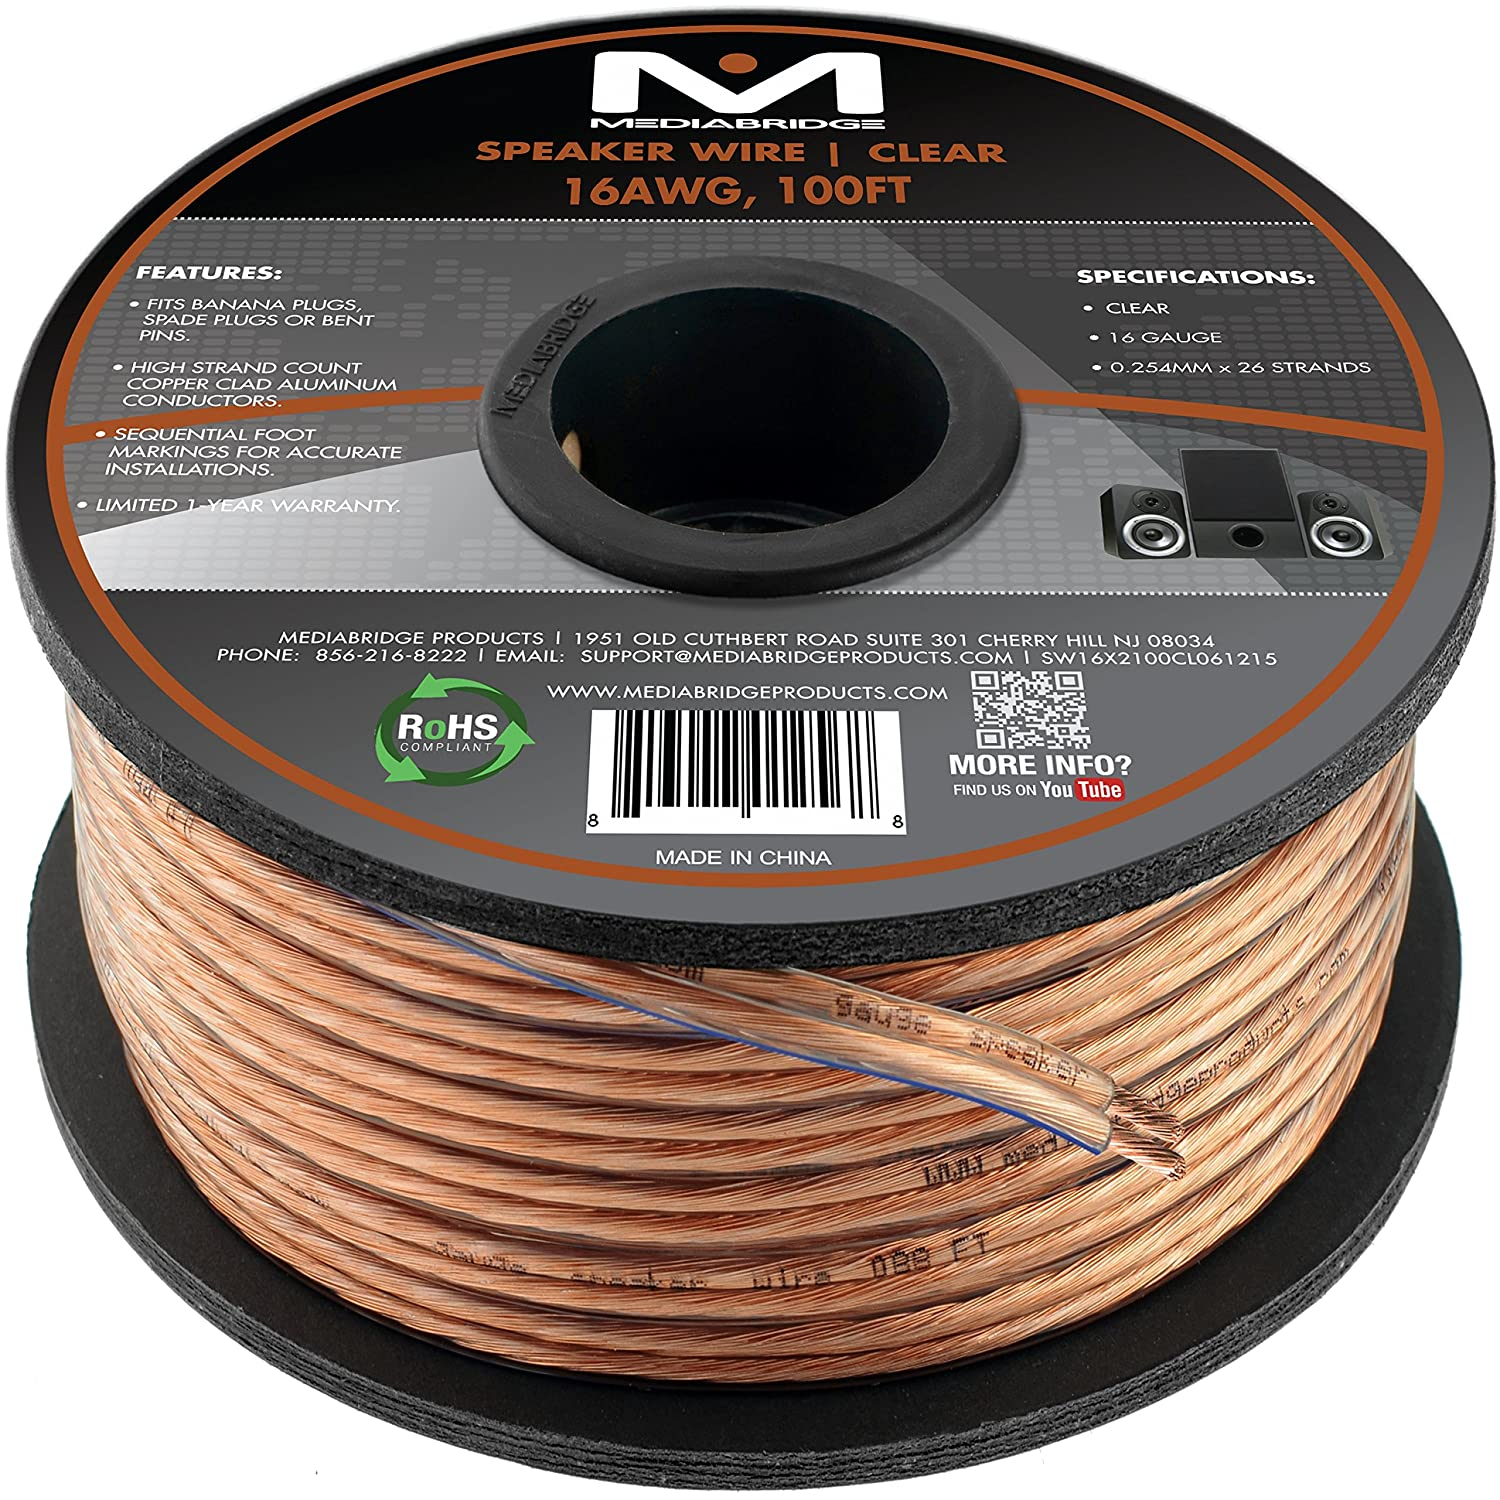 Amazon mediabridge 16awg 2 conductor speaker wire 100 feet amazon mediabridge 16awg 2 conductor speaker wire 100 feet clear spooled design with sequential foot markings part sw 16x2 100 cl home audio greentooth Image collections